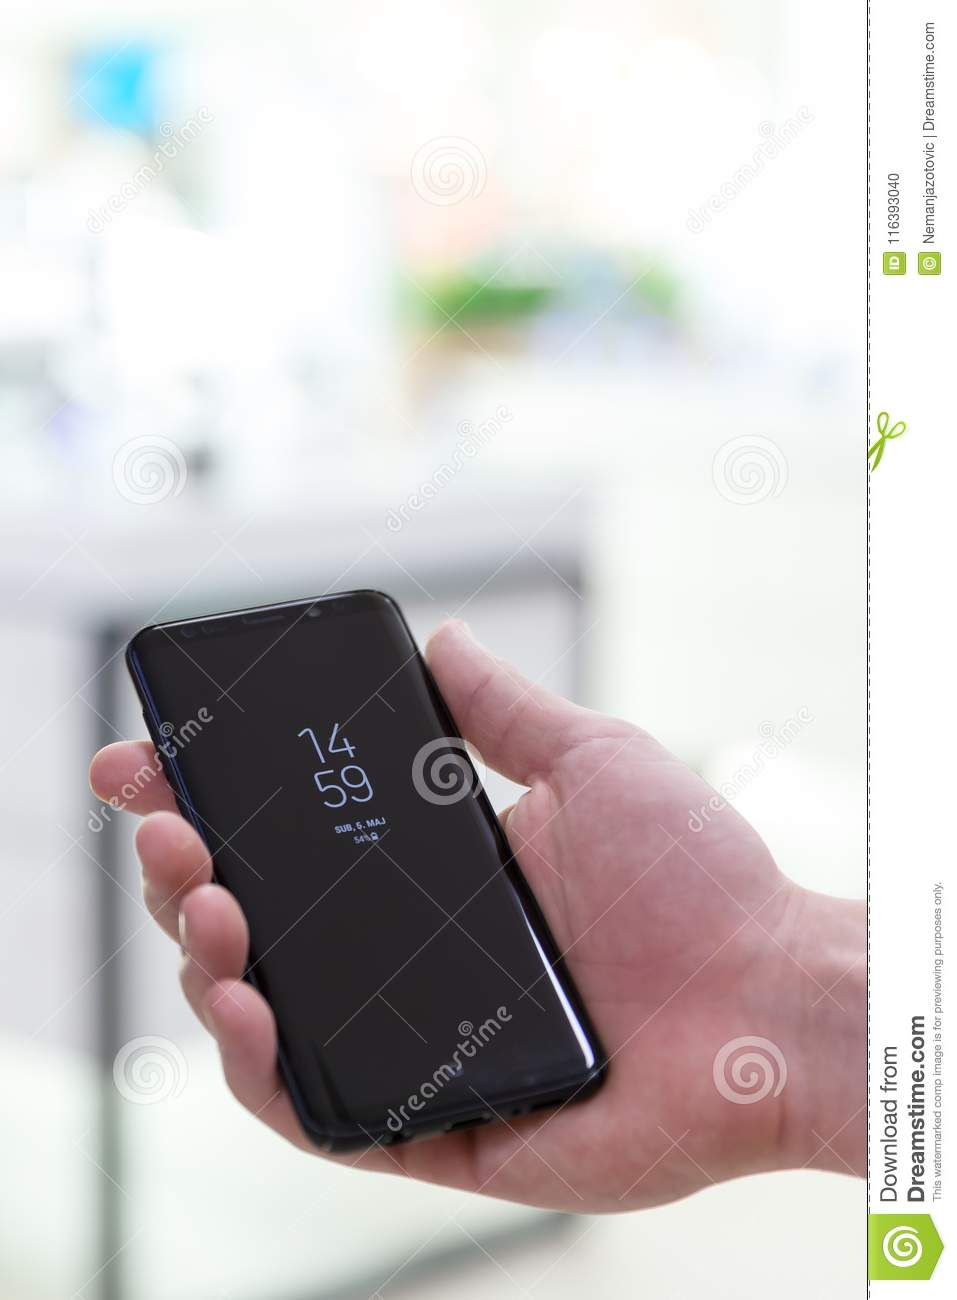 New Samsung Galaxy S9 Plus Smartphone In Hand On Isolated